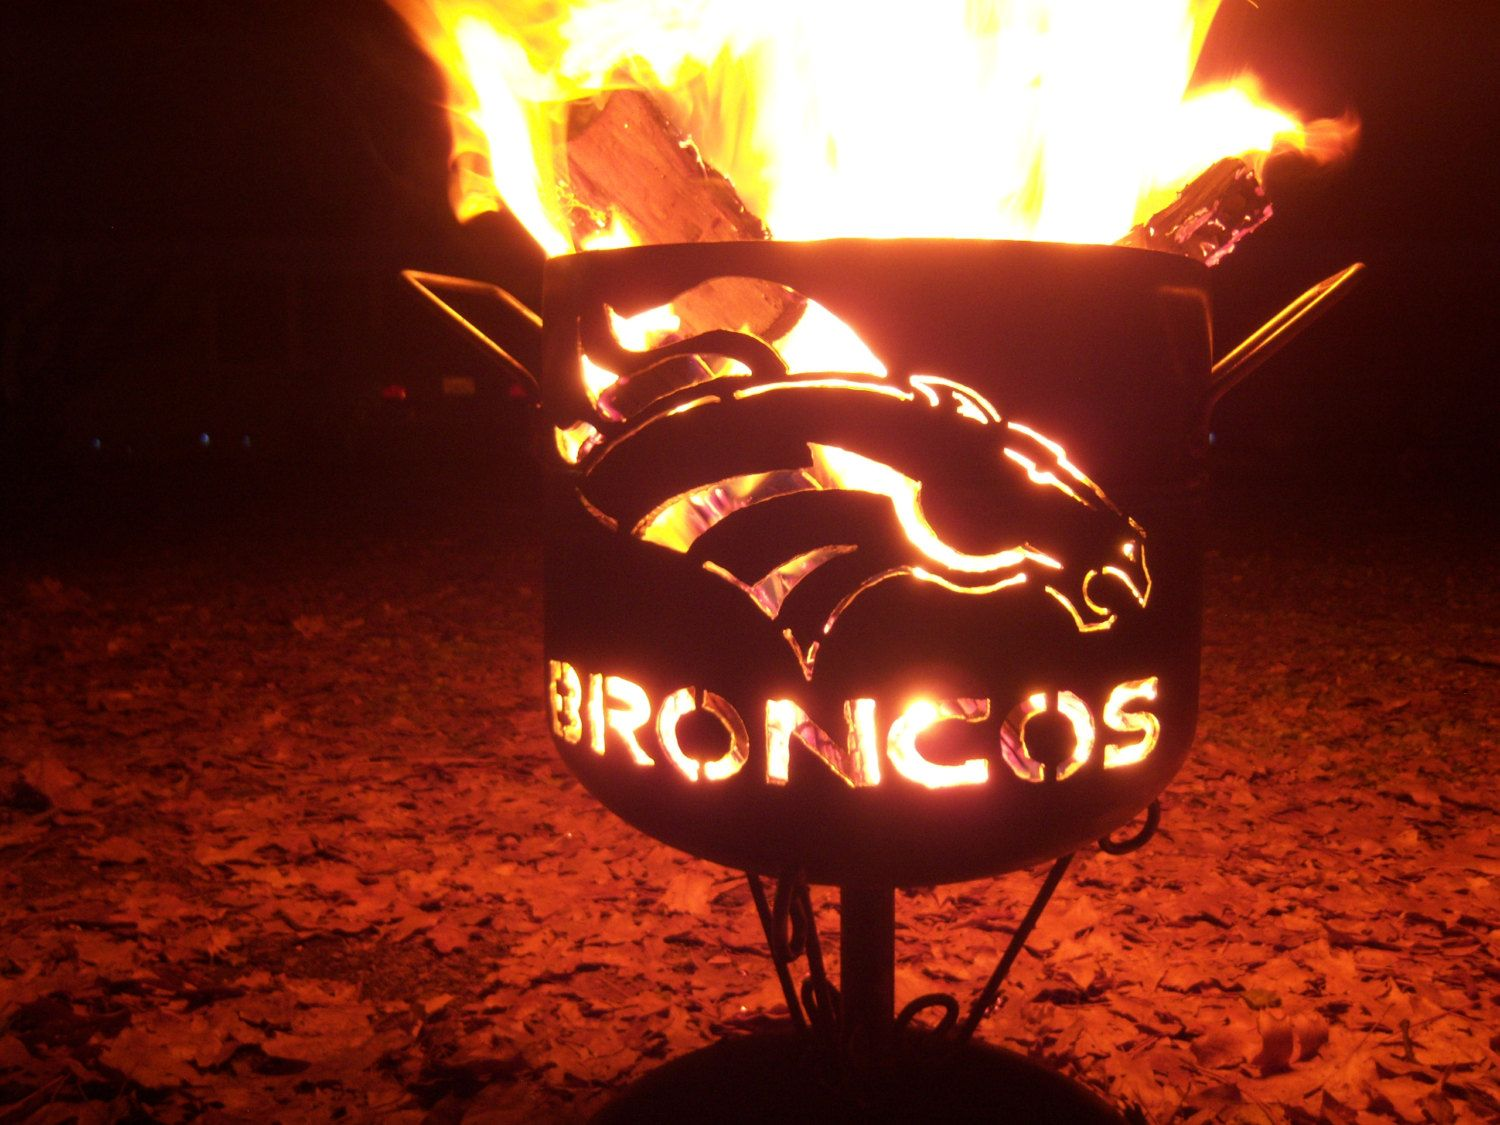 Denver Broncos compact fire pit of salvaged by YosemiteHomeFires, $110.00 - Denver Broncos Compact Fire Pit Of Salvaged By YosemiteHomeFires